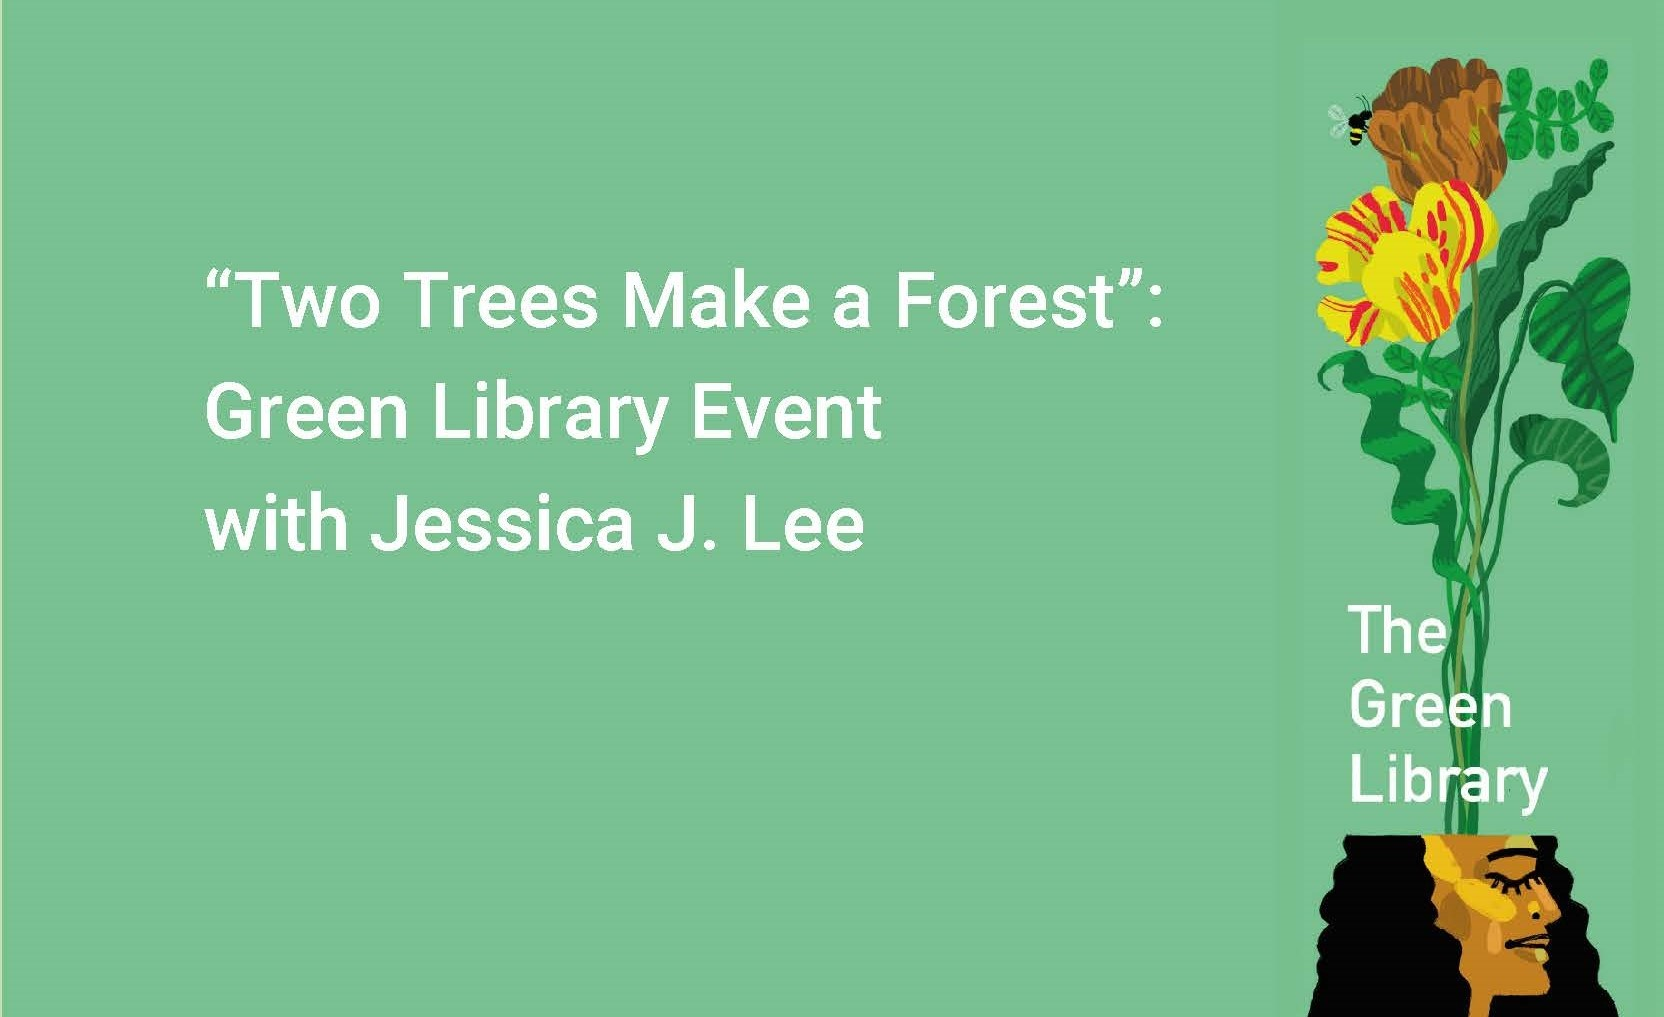 """Two Trees Make a Forest"": Green Library Event mit Jessica J. Lee"